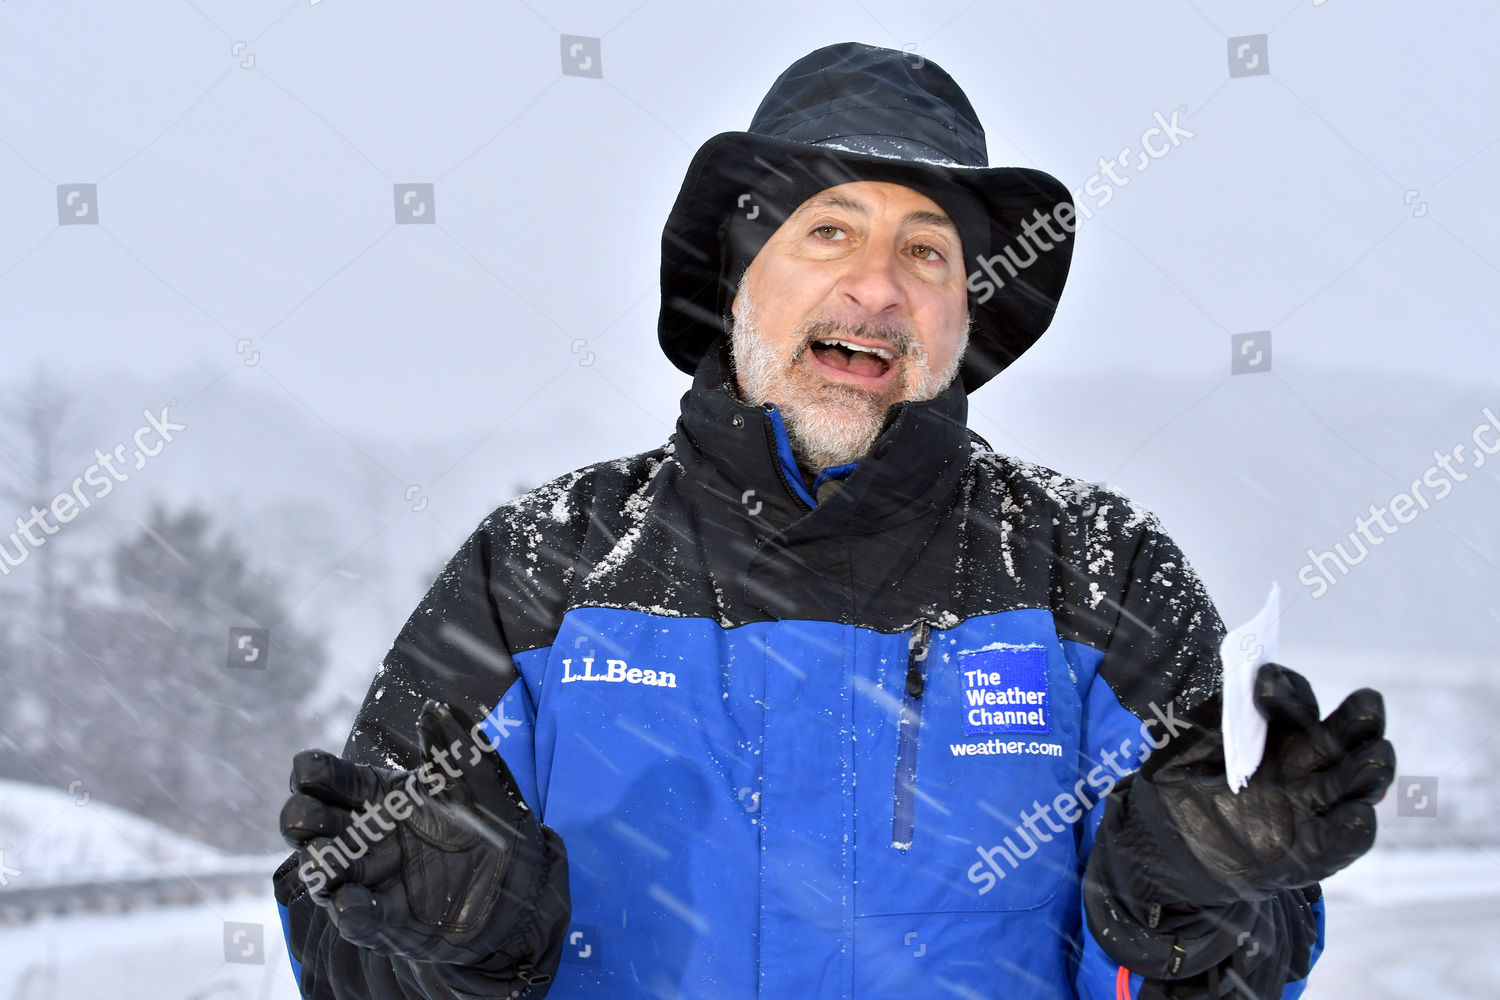 Weather Channels Jim Cantore reporting live coverage